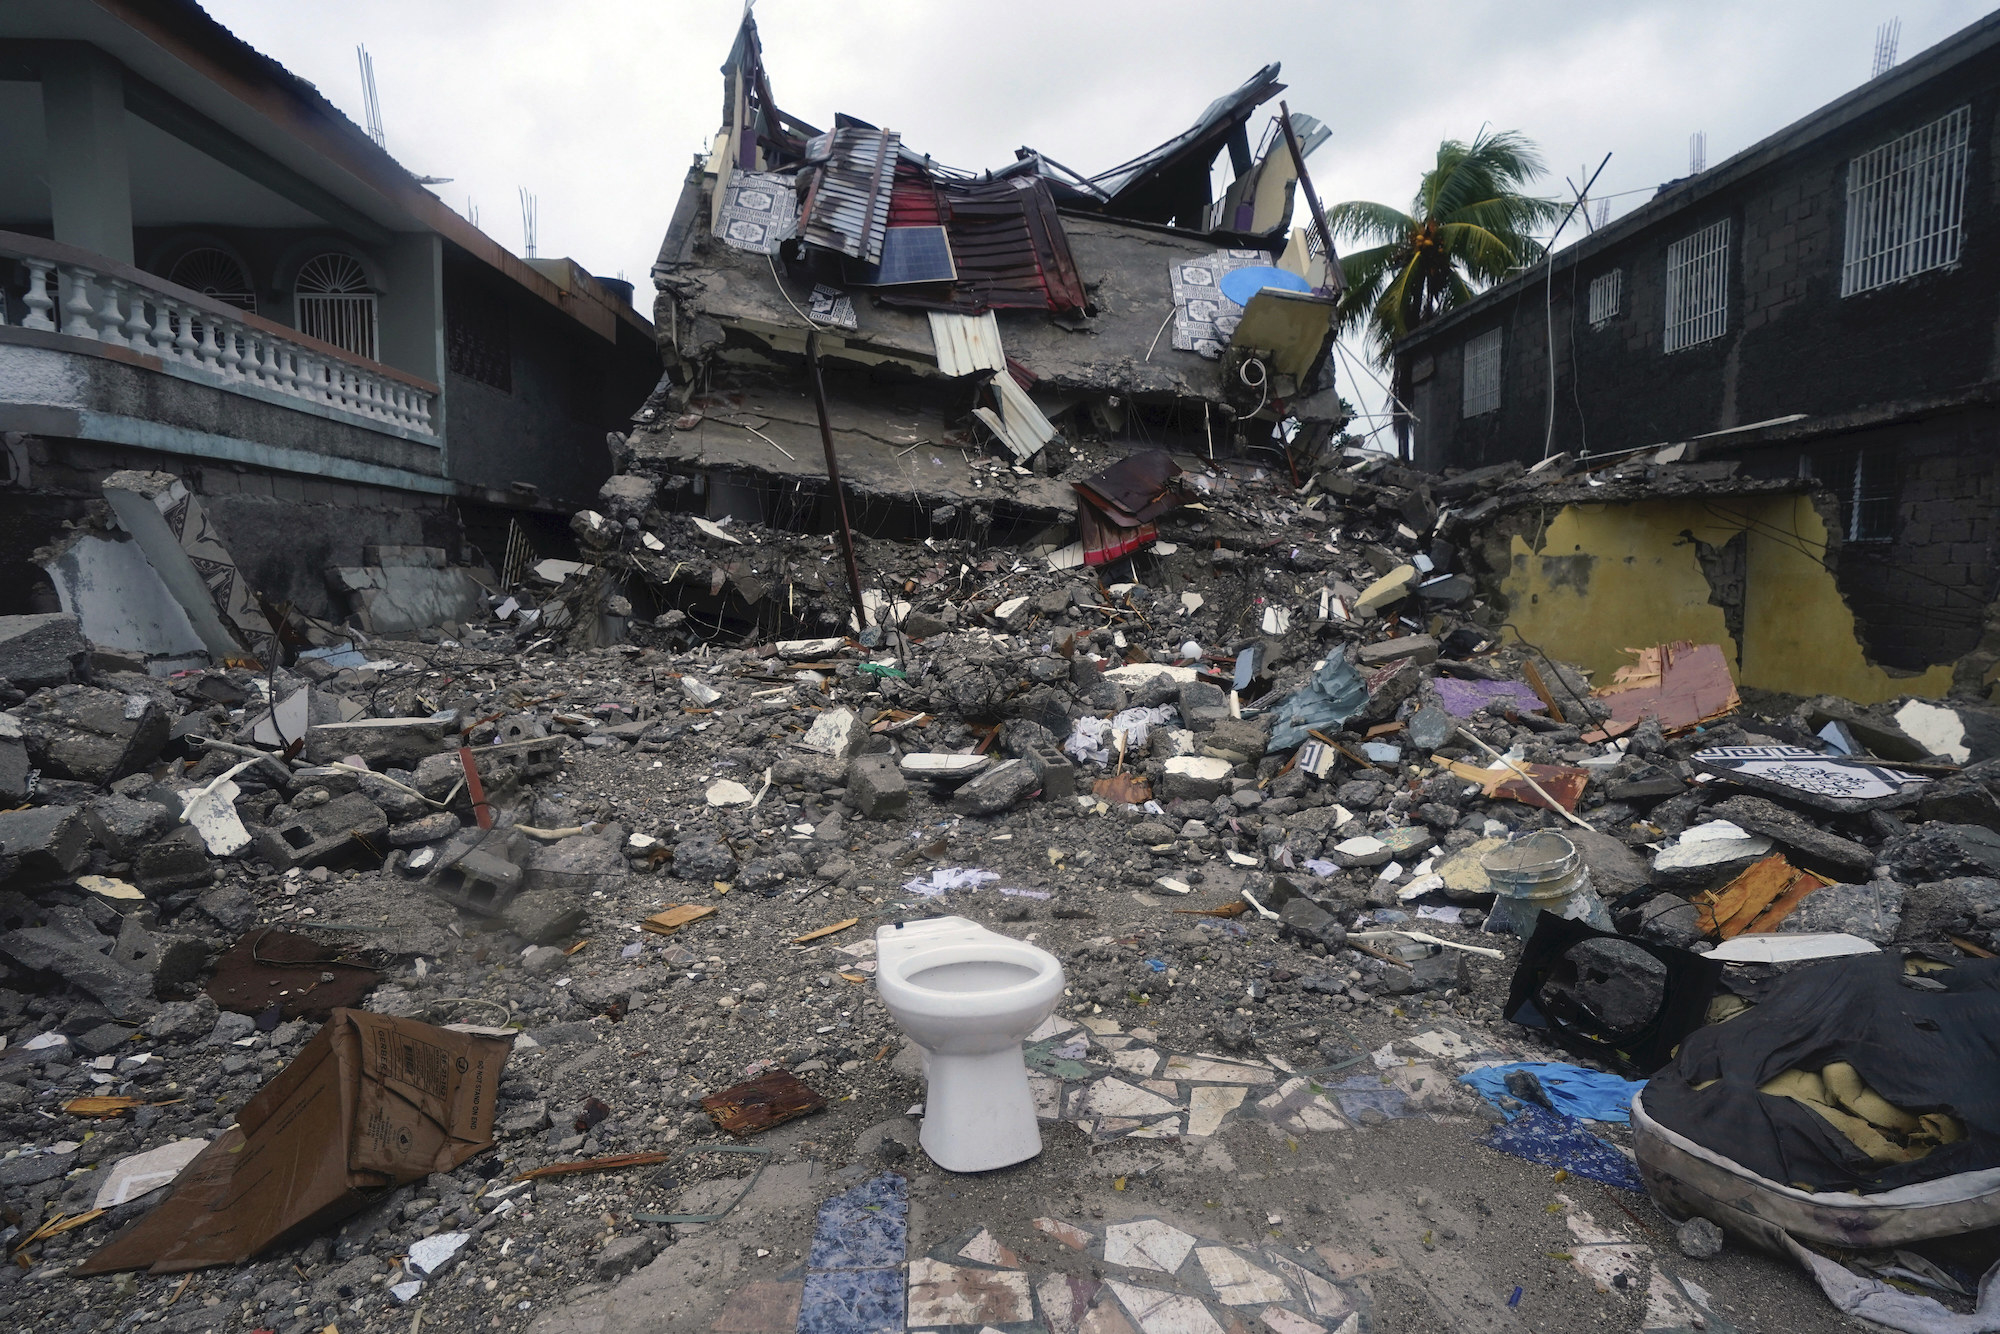 A multistory building collapsed into a pile of rubble amid debris from homes scattered all over the street